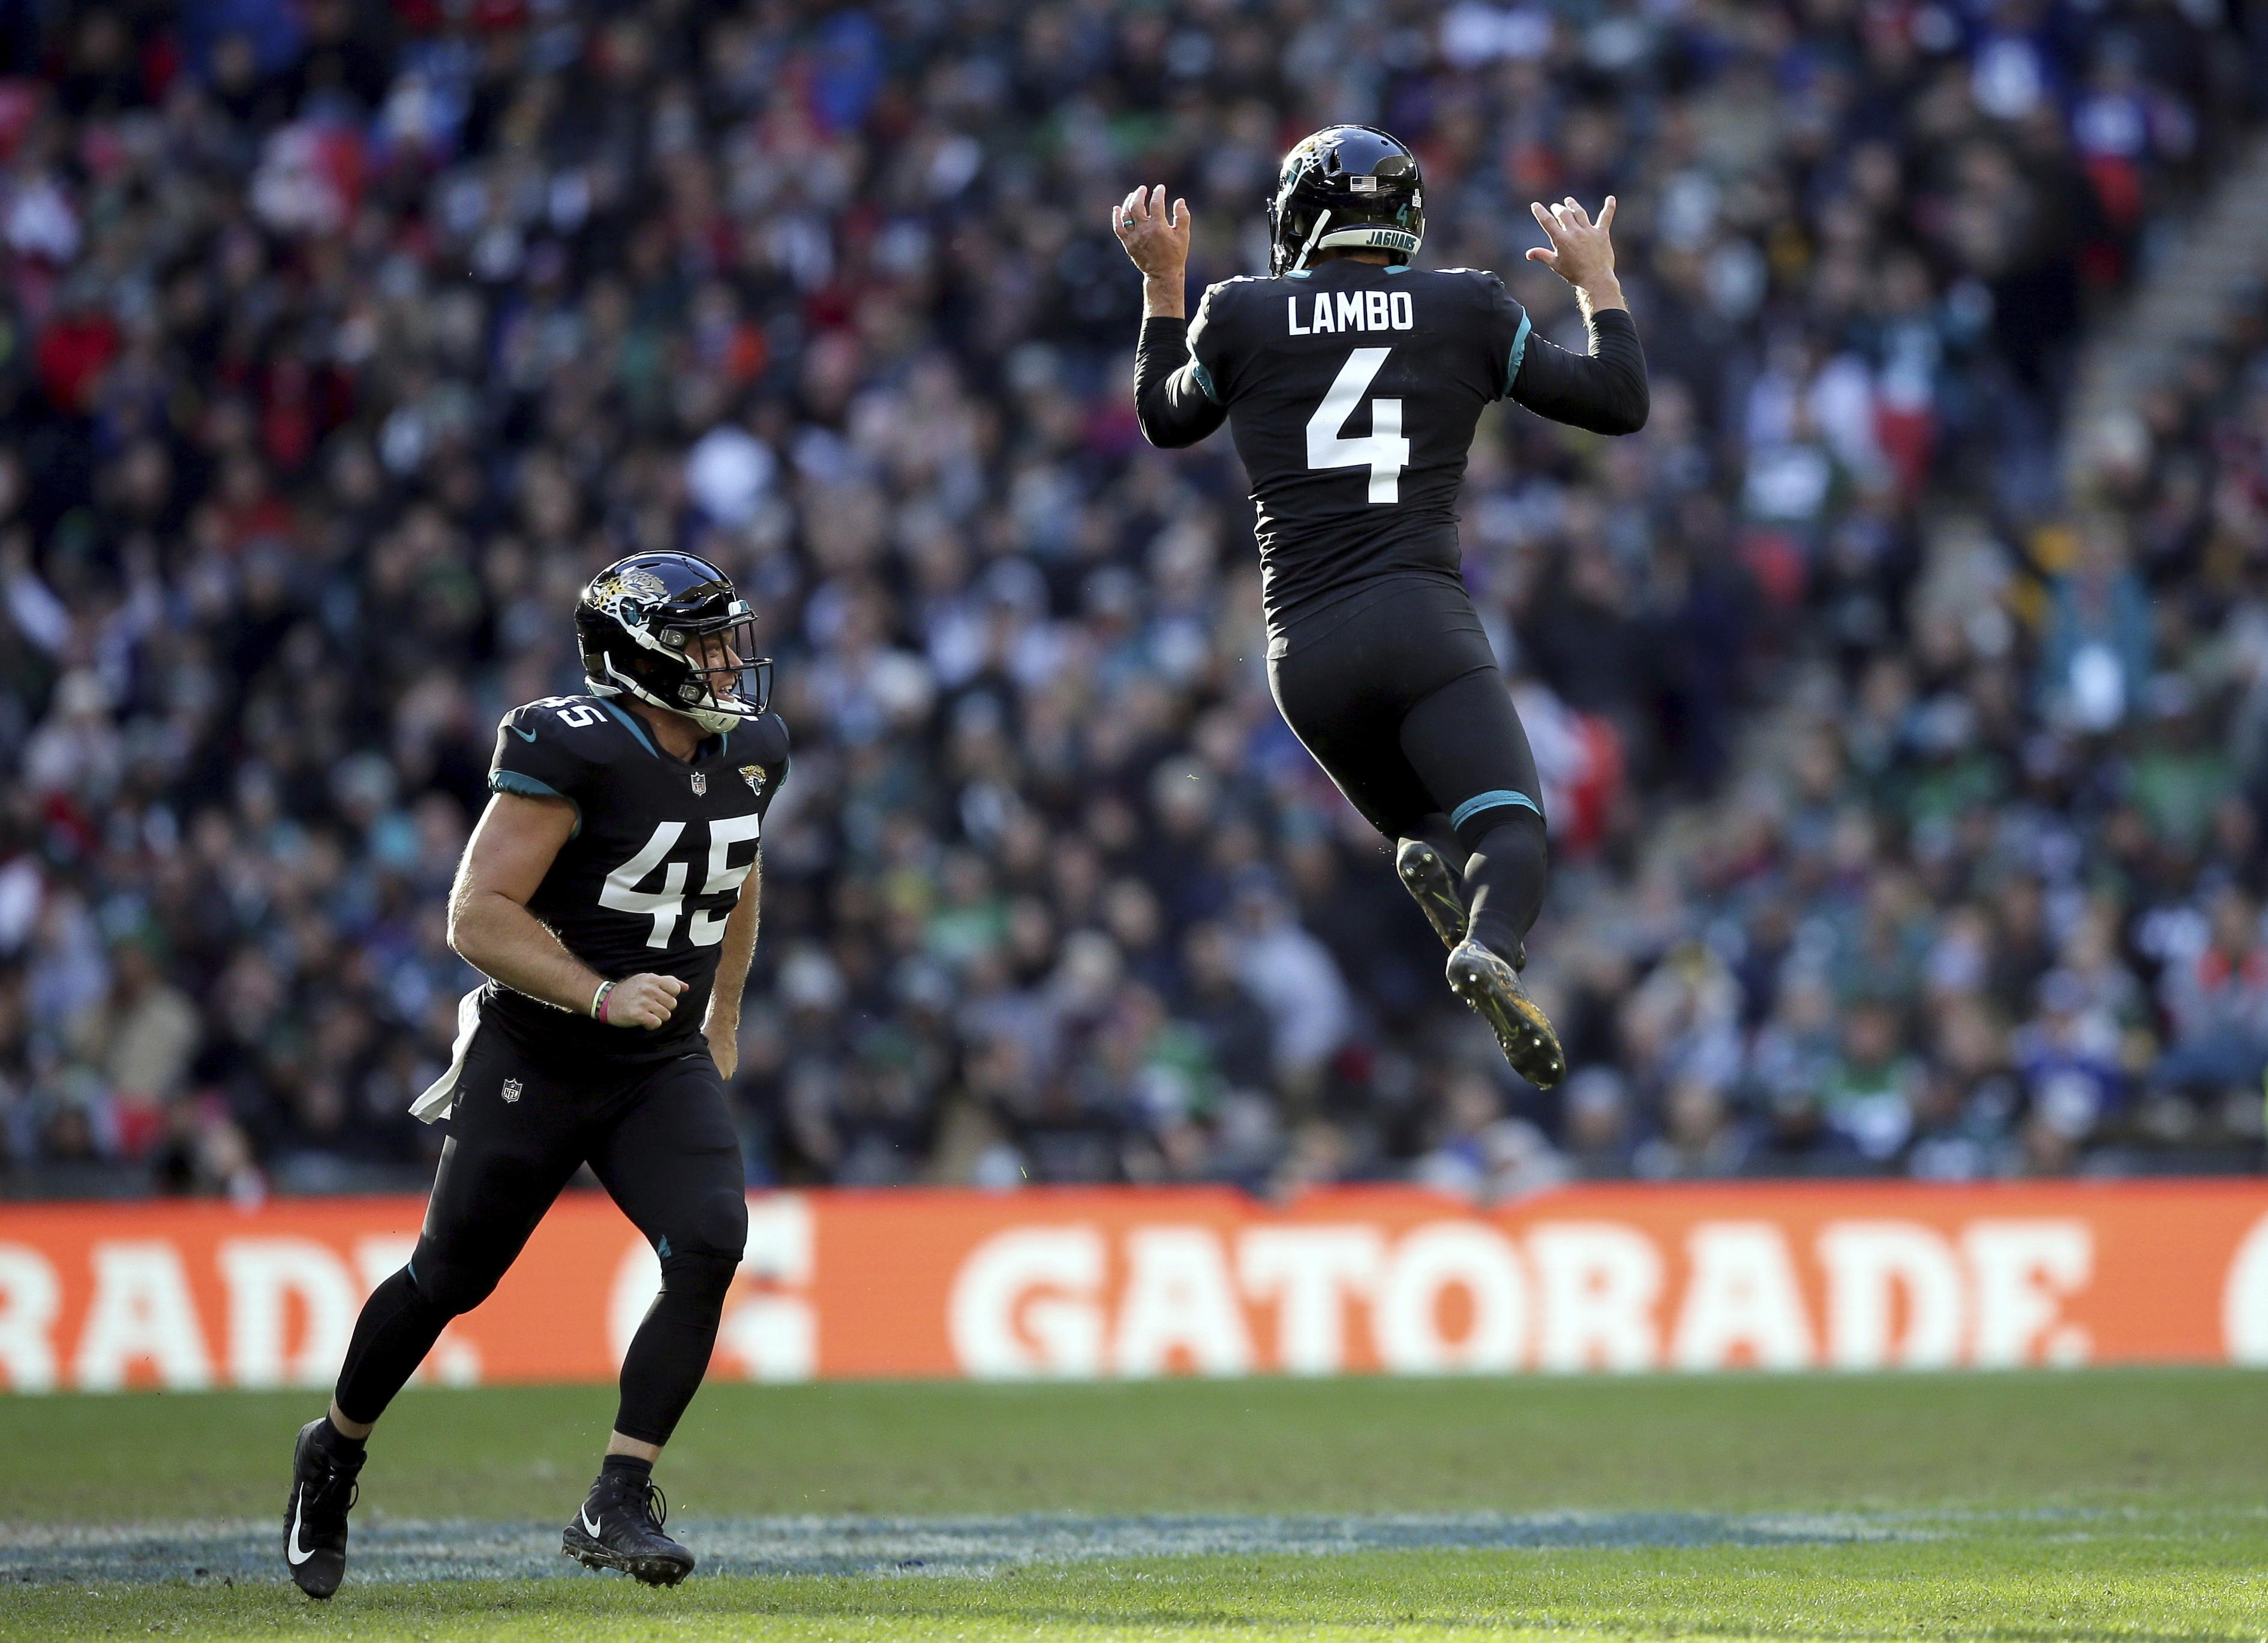 Jaguars kicker Josh Lambo had helped give his side an early lead